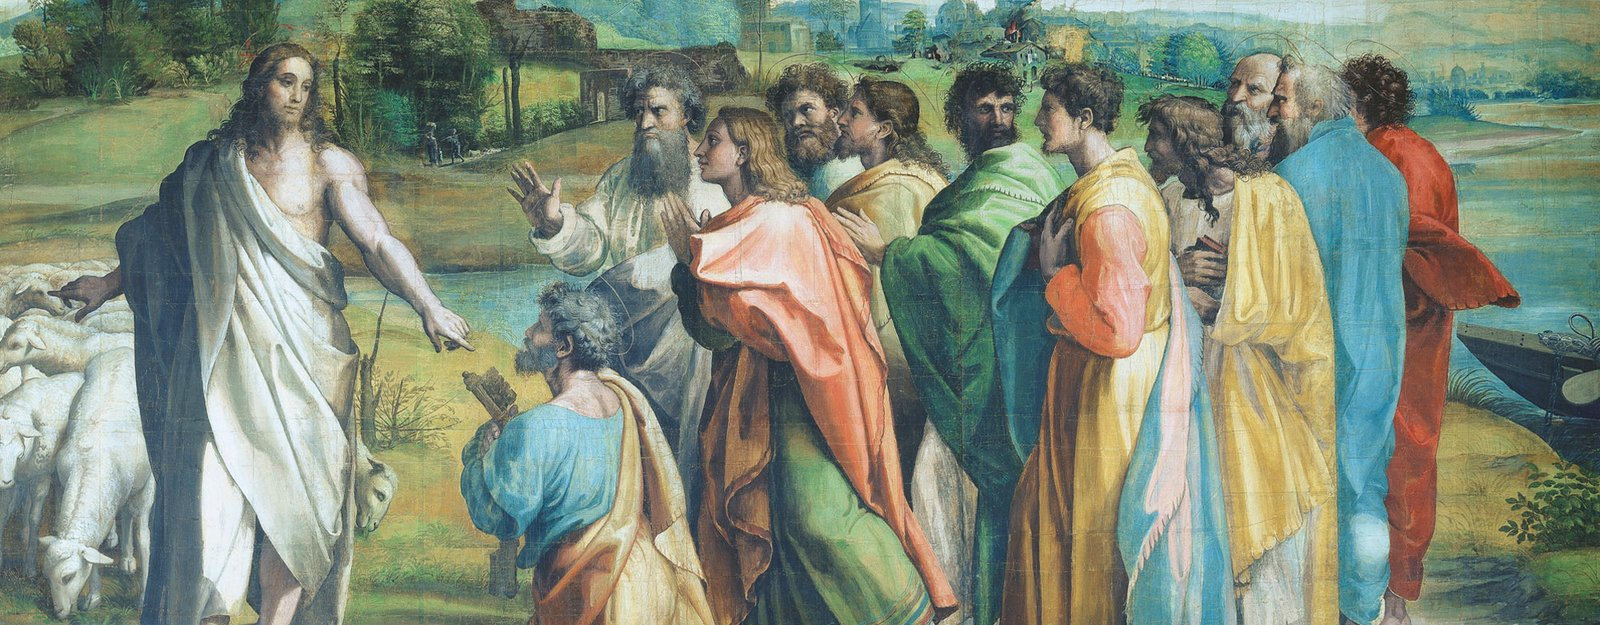 A cartoon for the tapestry of Christ's Charge to Peter for the Sistine Chapel. Christ is standing on the left, pointing behind himself to a flock of sheep and in front to the keys held by Peter, who is kneeling. The other disciples stand in a group at the